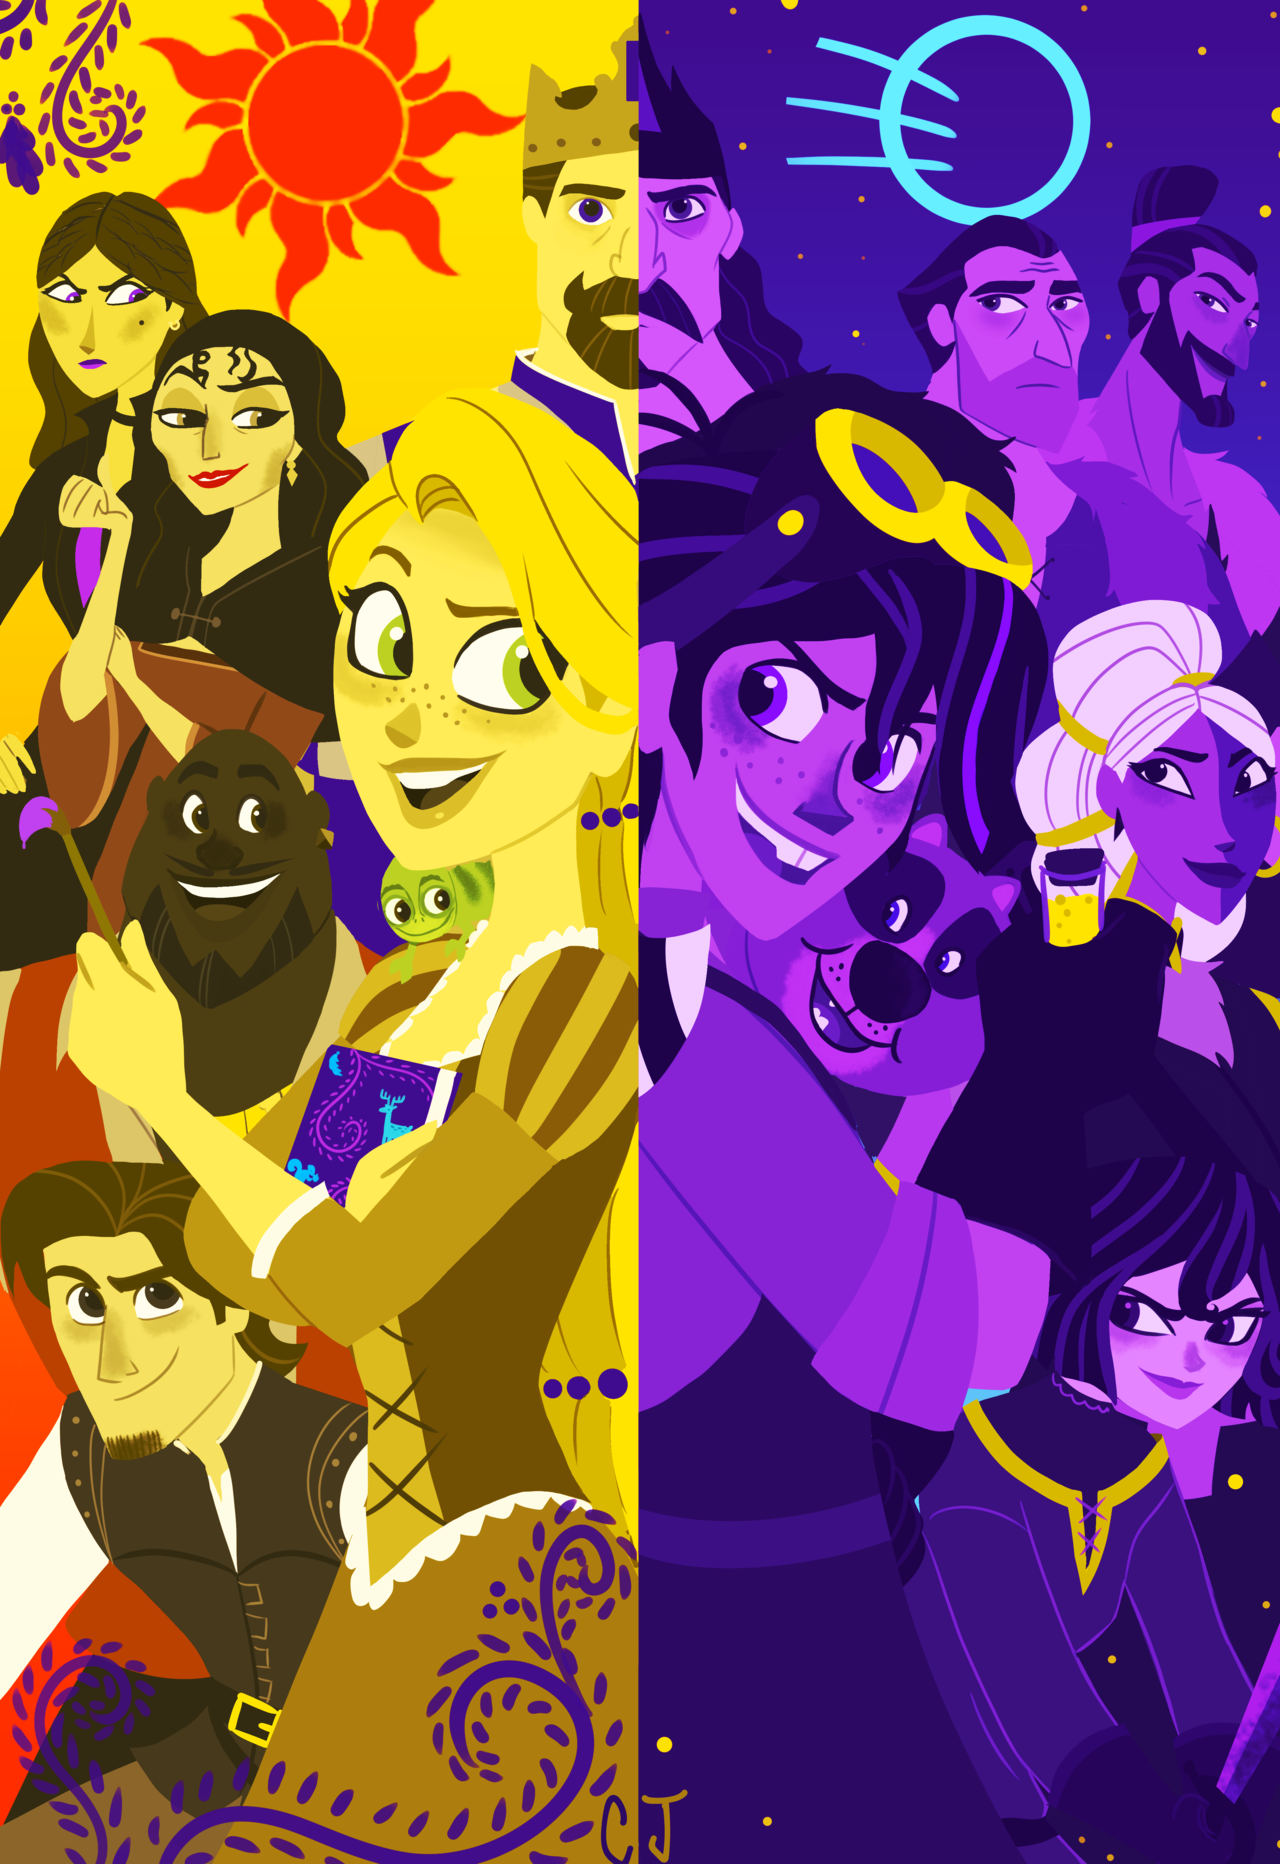 More Day Vs Night Imagery For An Updated Version Of This Piece Sadly I Could Not Find Room To Squeeze Max And O Disney Tangled Tangled Series Disney Rapunzel